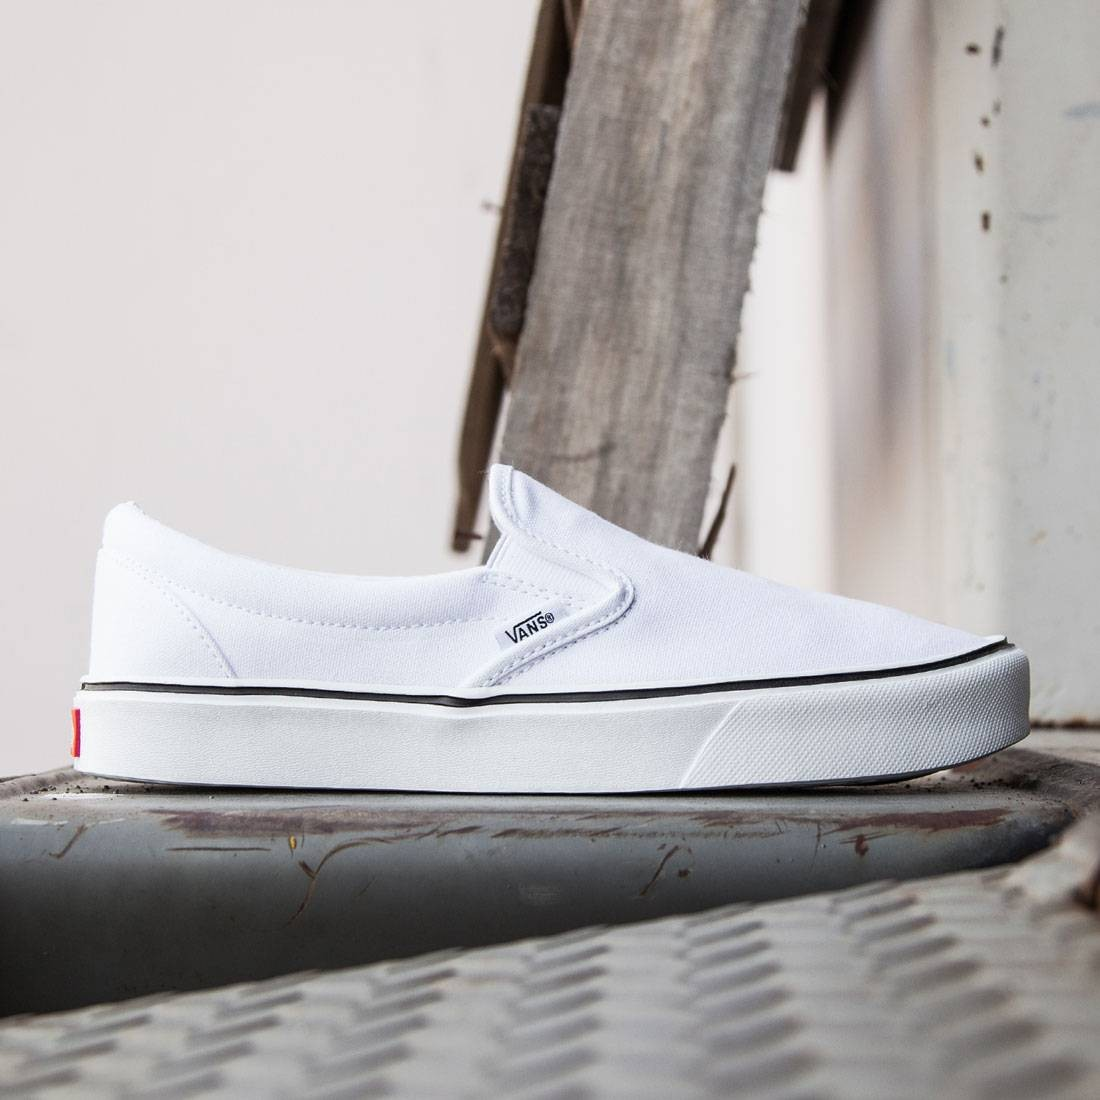 White Van Slip Ons | Vans Old Skool Gum Sole | Vans Hawaiian Shoes